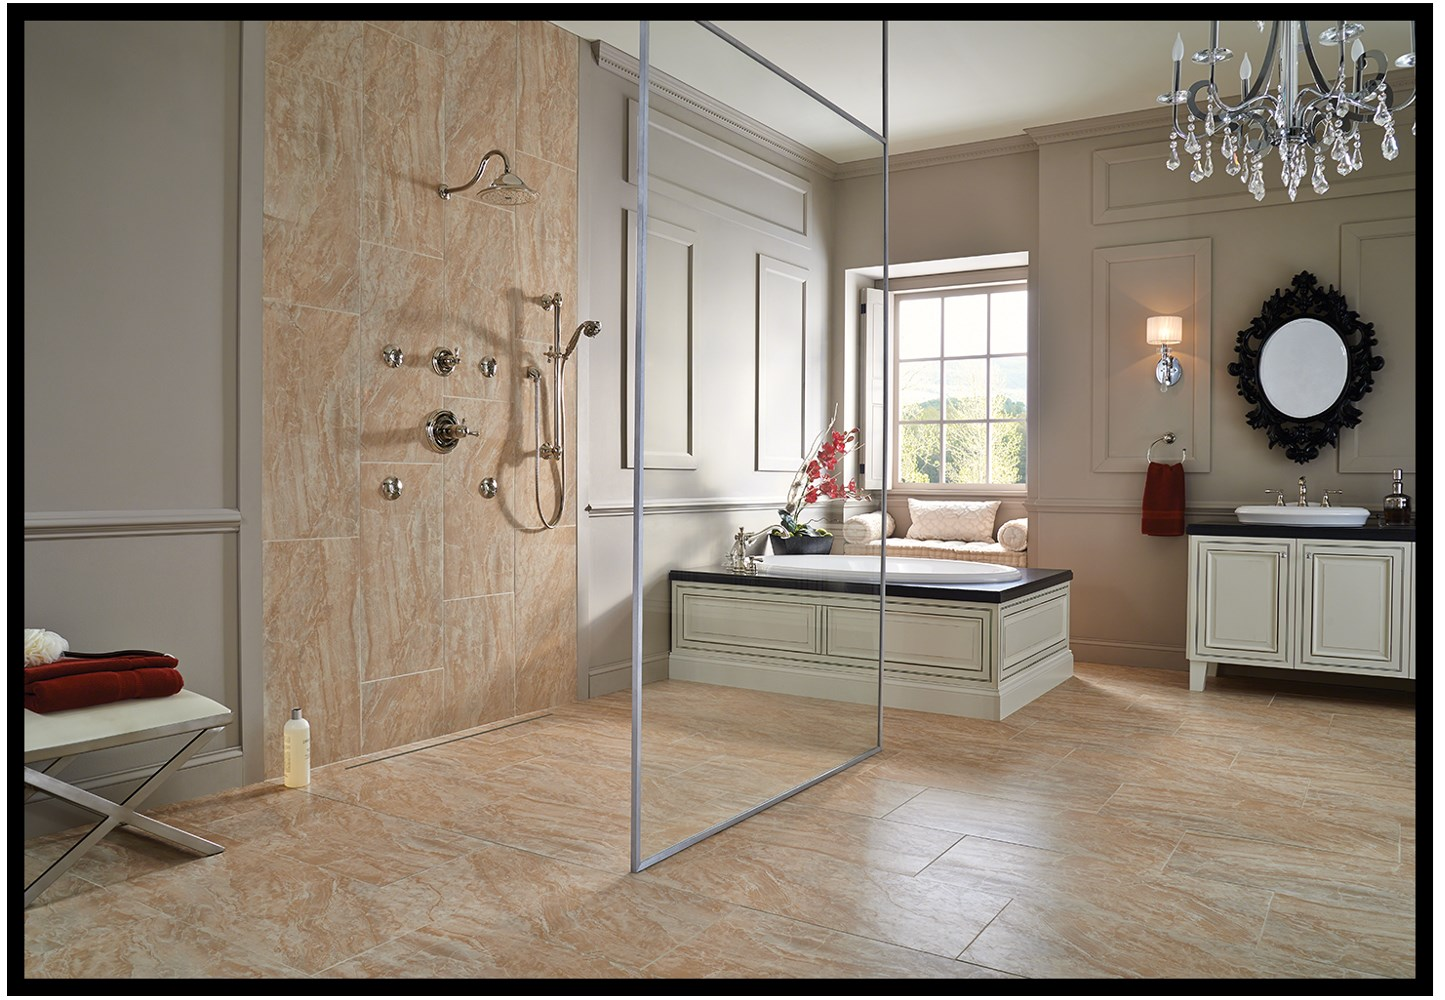 Pictures suitable for bathroom walls - Living Large With Oversized Tiles